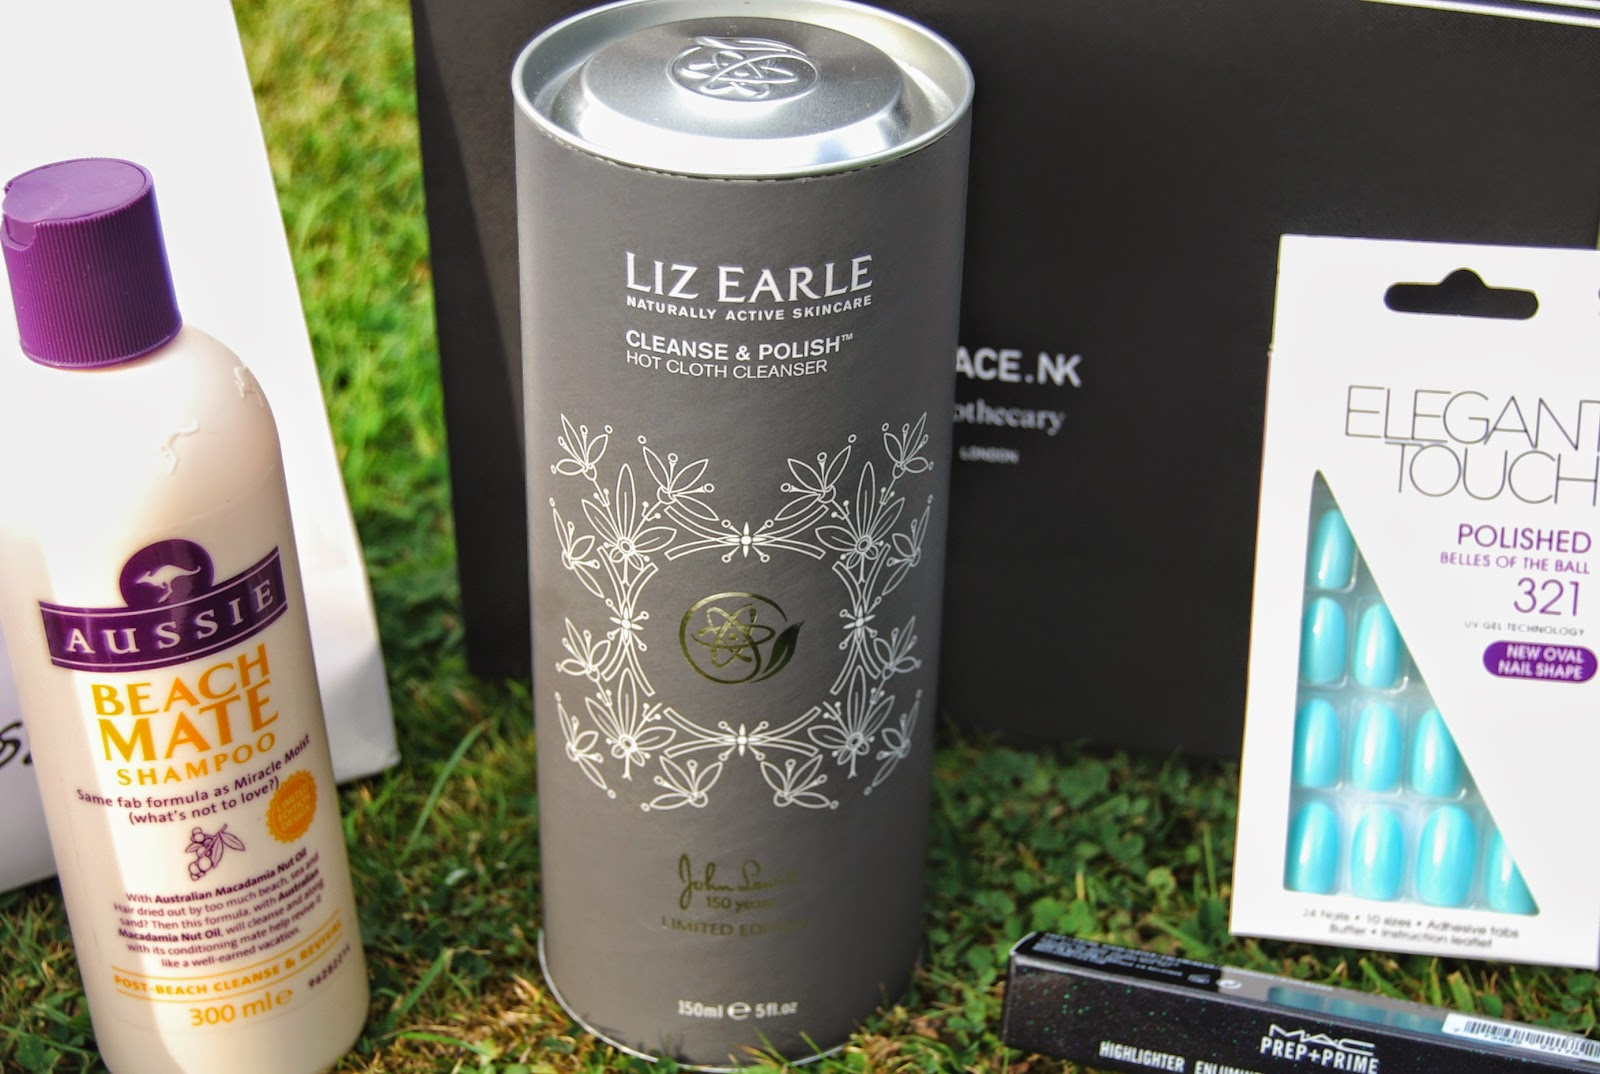 Liz Earle Limited Edition Hot Cloth Cleanser - John Lewis